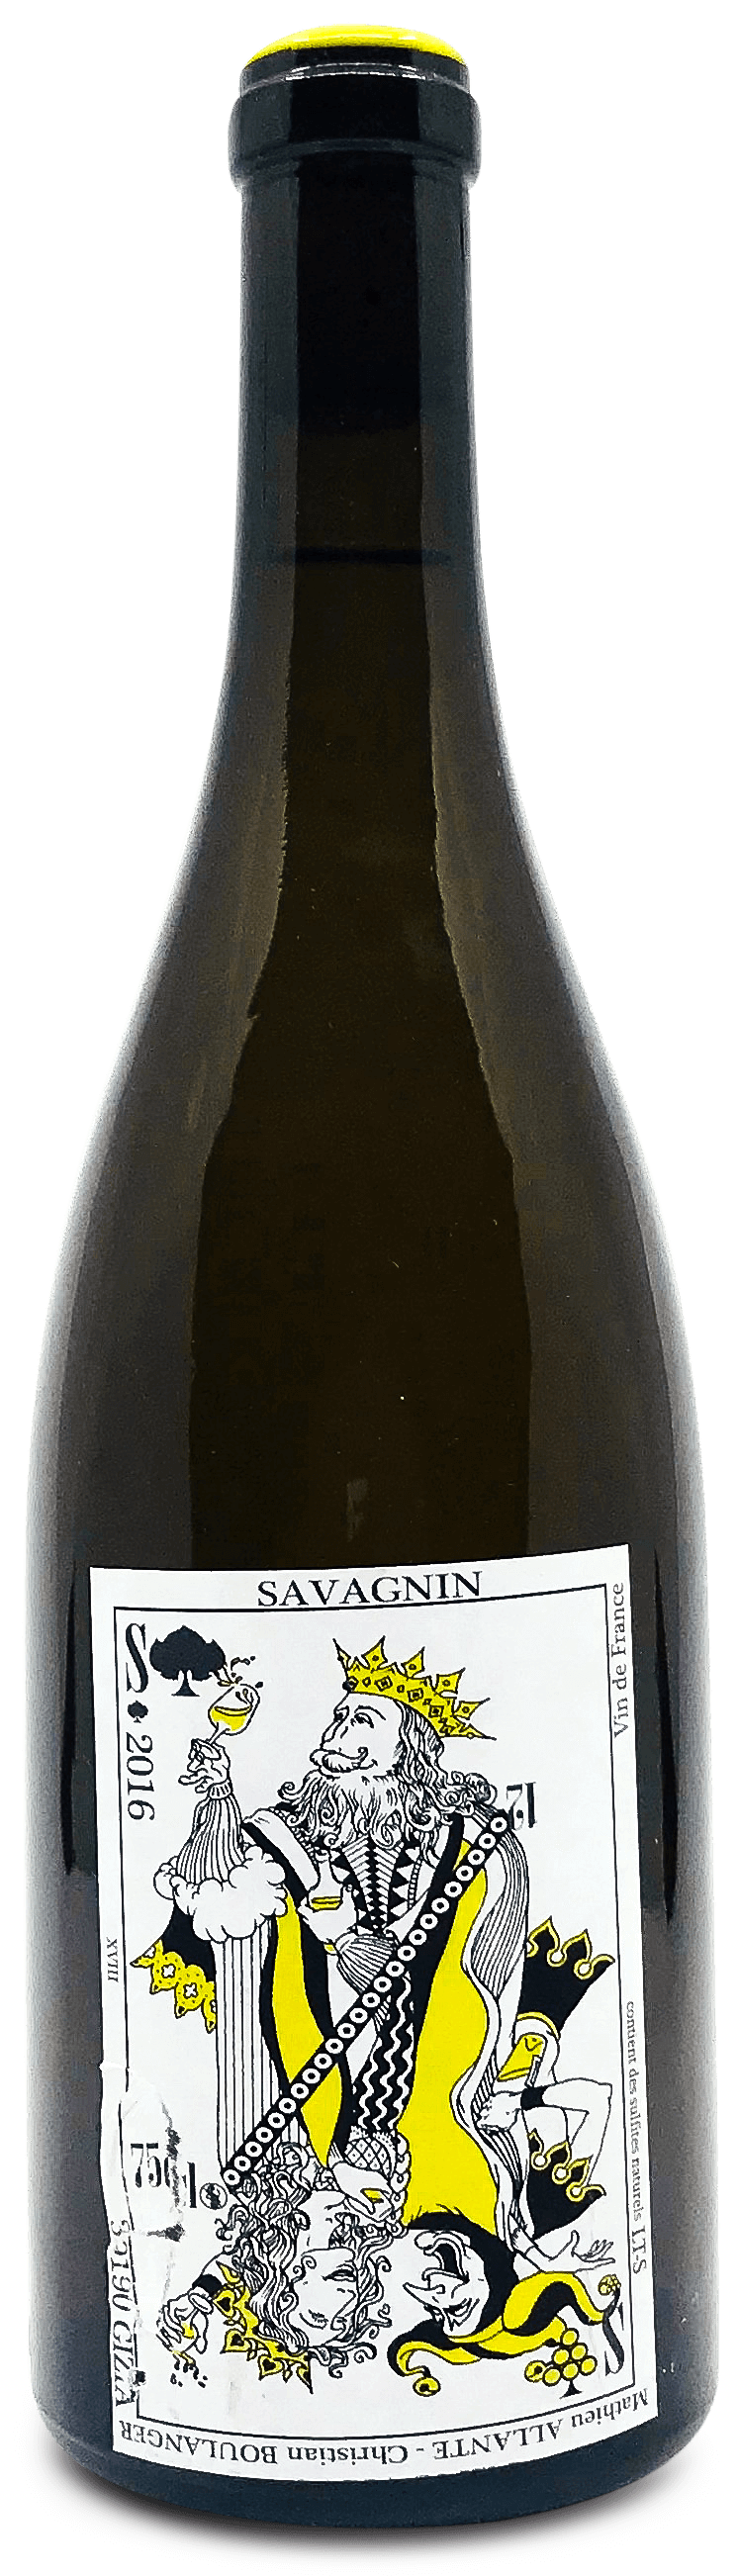 Savagnin - Vinsupernaturel